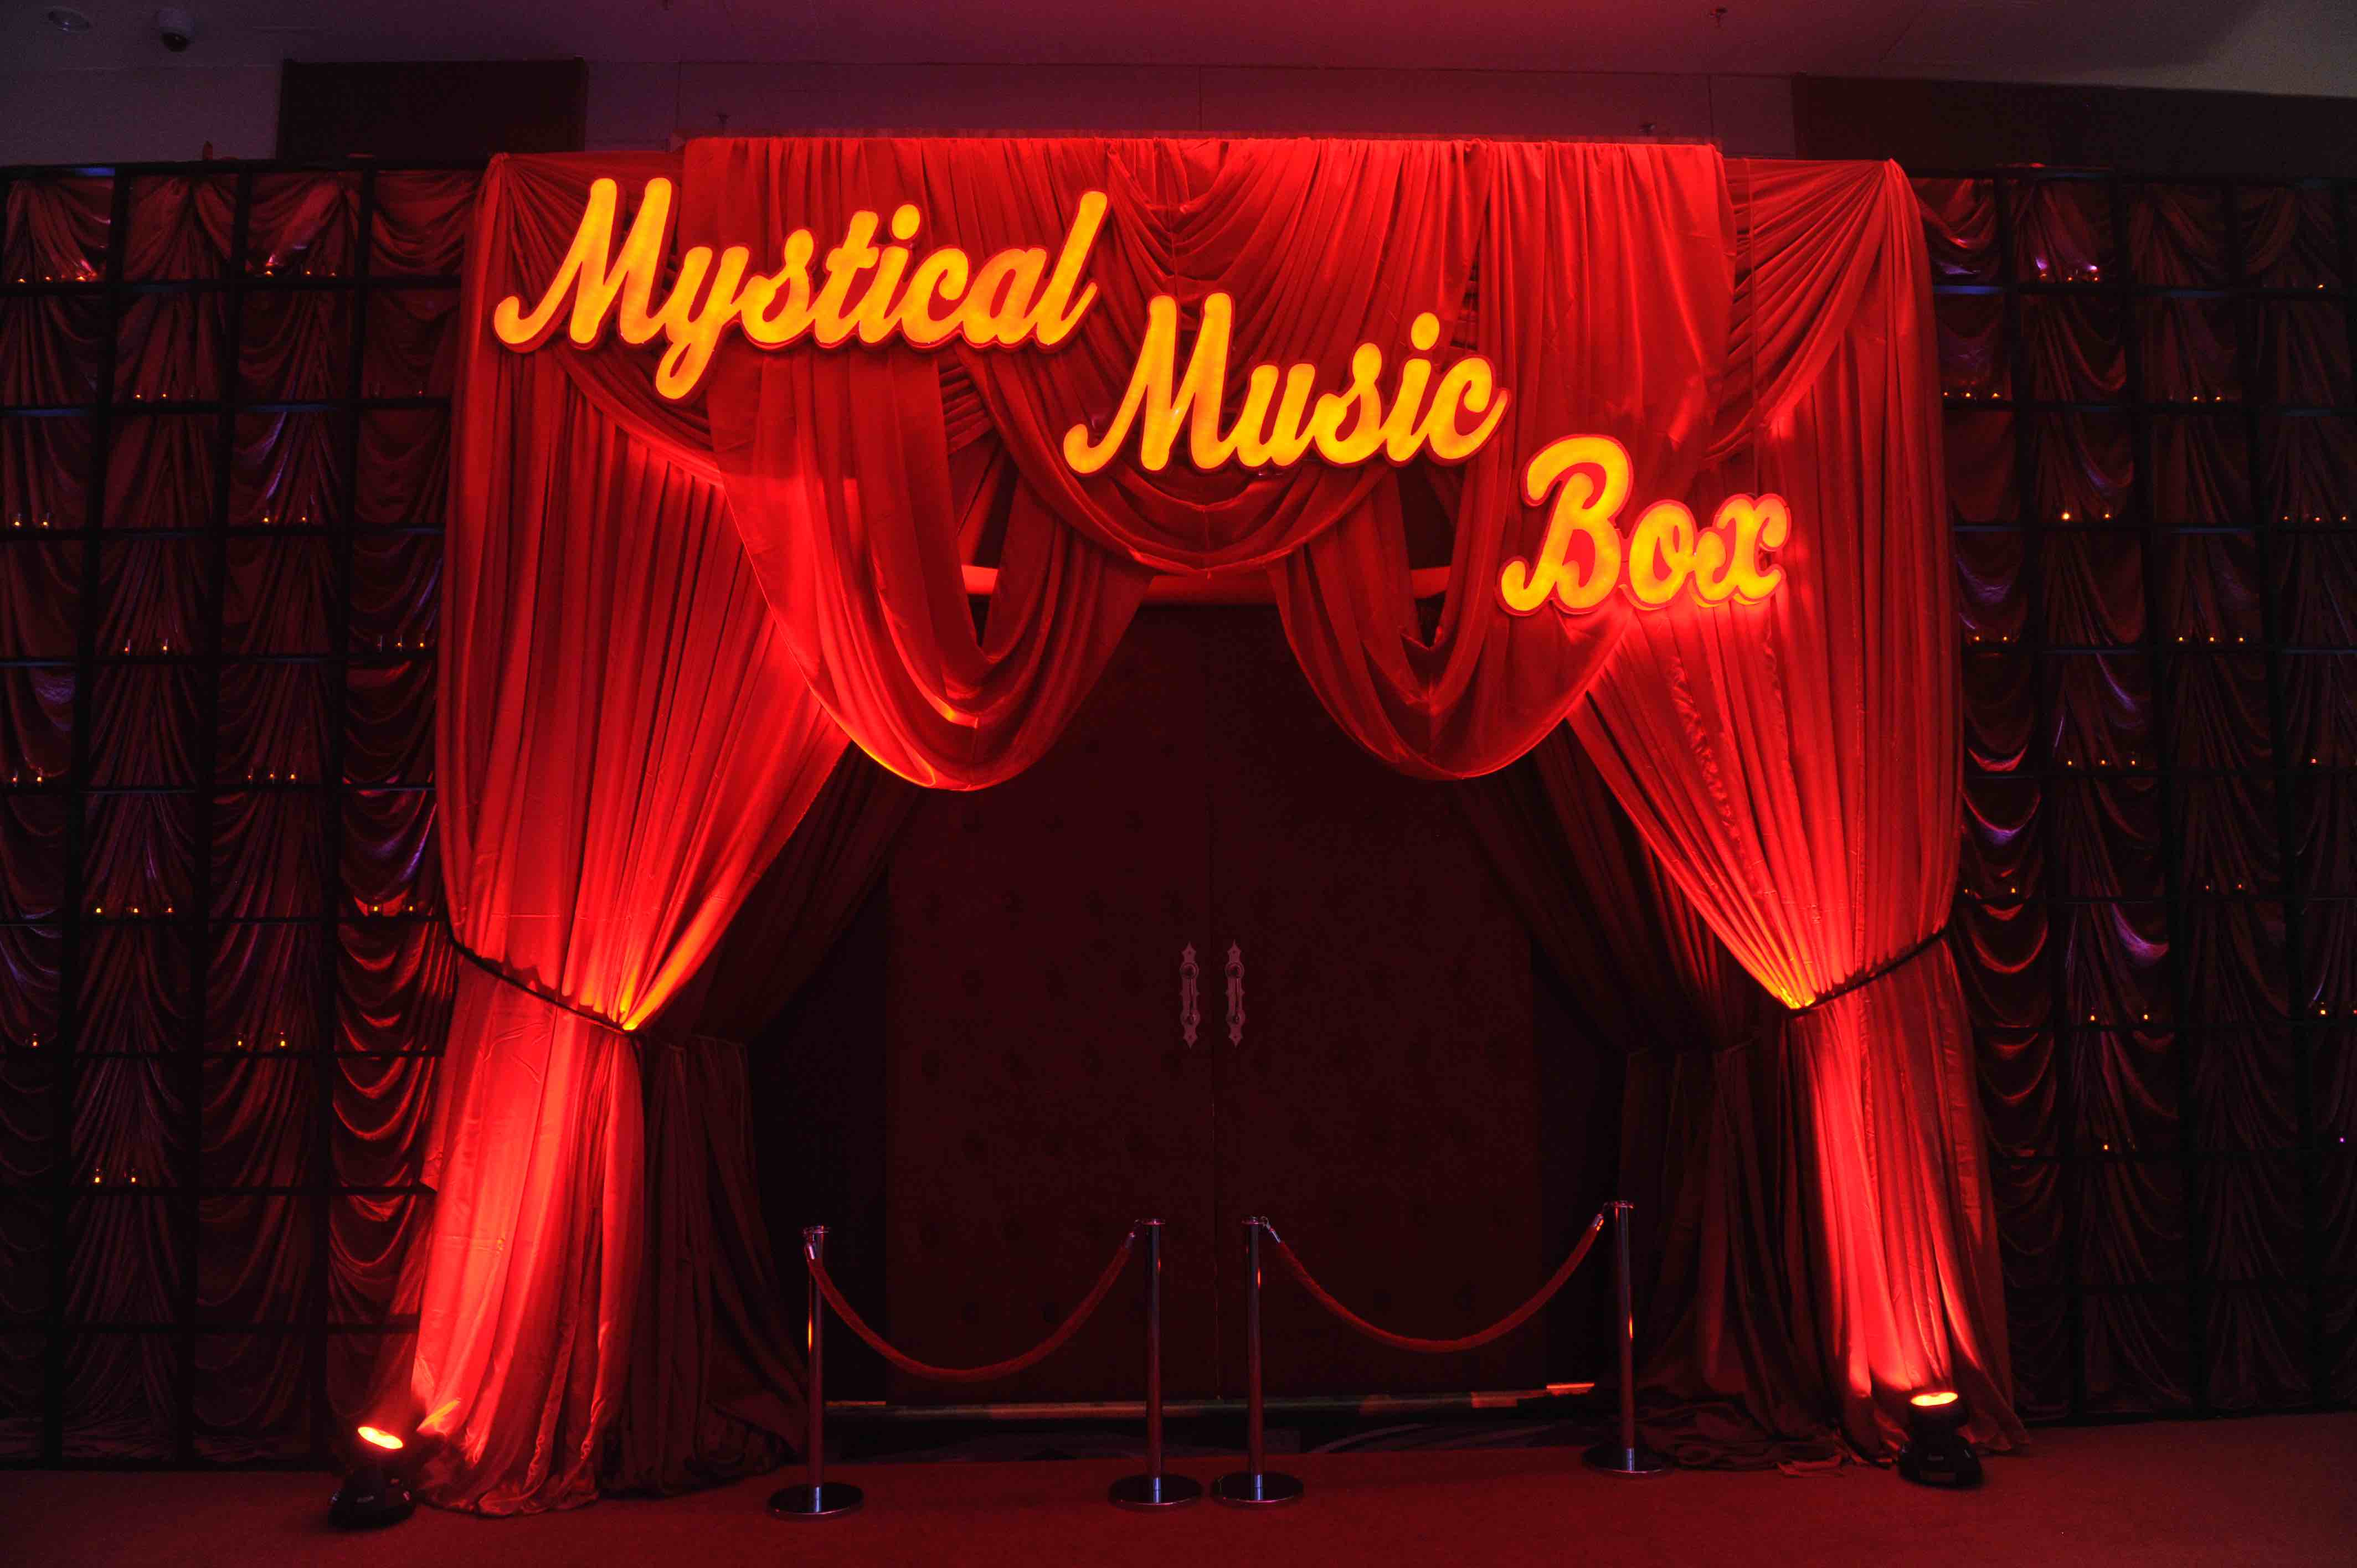 Mystical Music Box Entrance